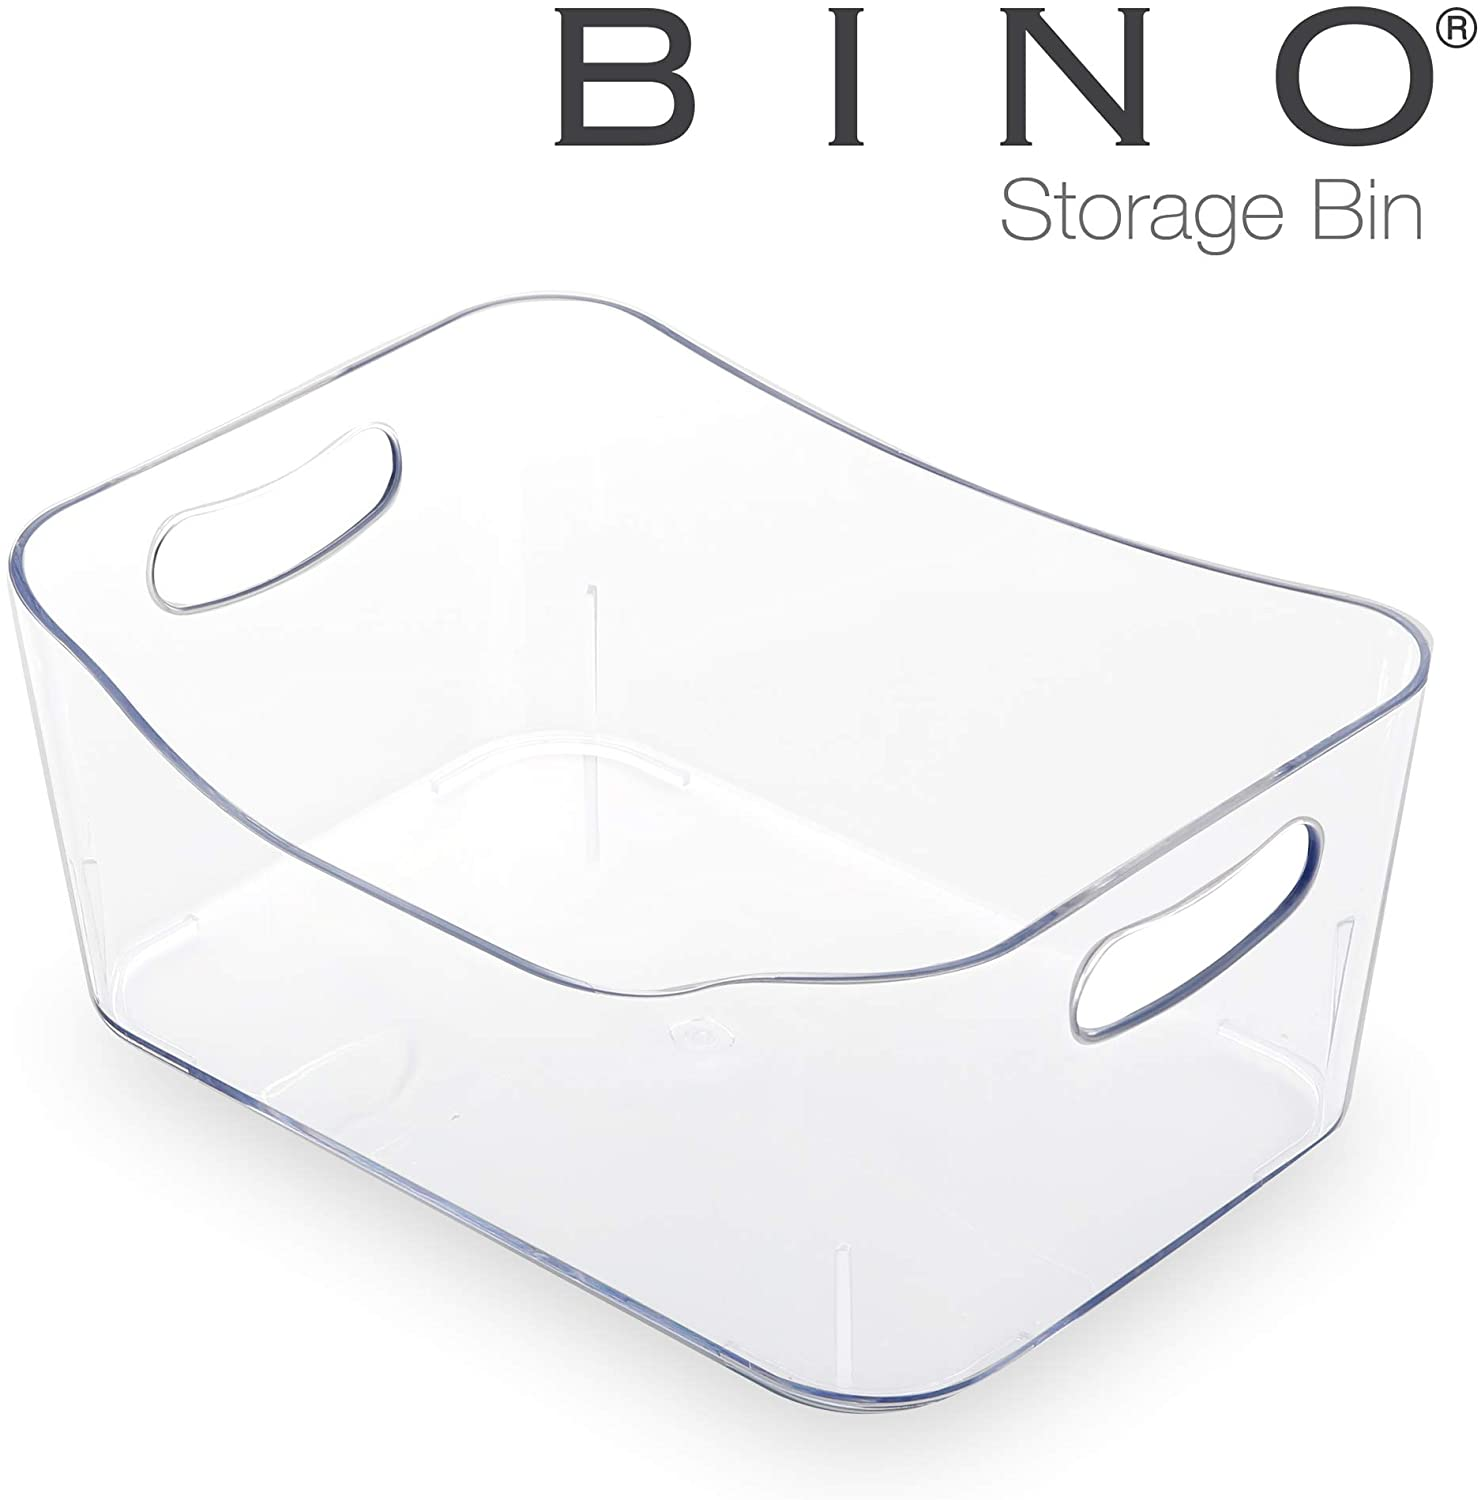 BINO Refrigerator, Freezer and Pantry Cabinet Storage Organizer Bin with Handles - Clear and Transparent Plastic Wide Nesting Food Container for Home and Kitchen (Clear, Small)